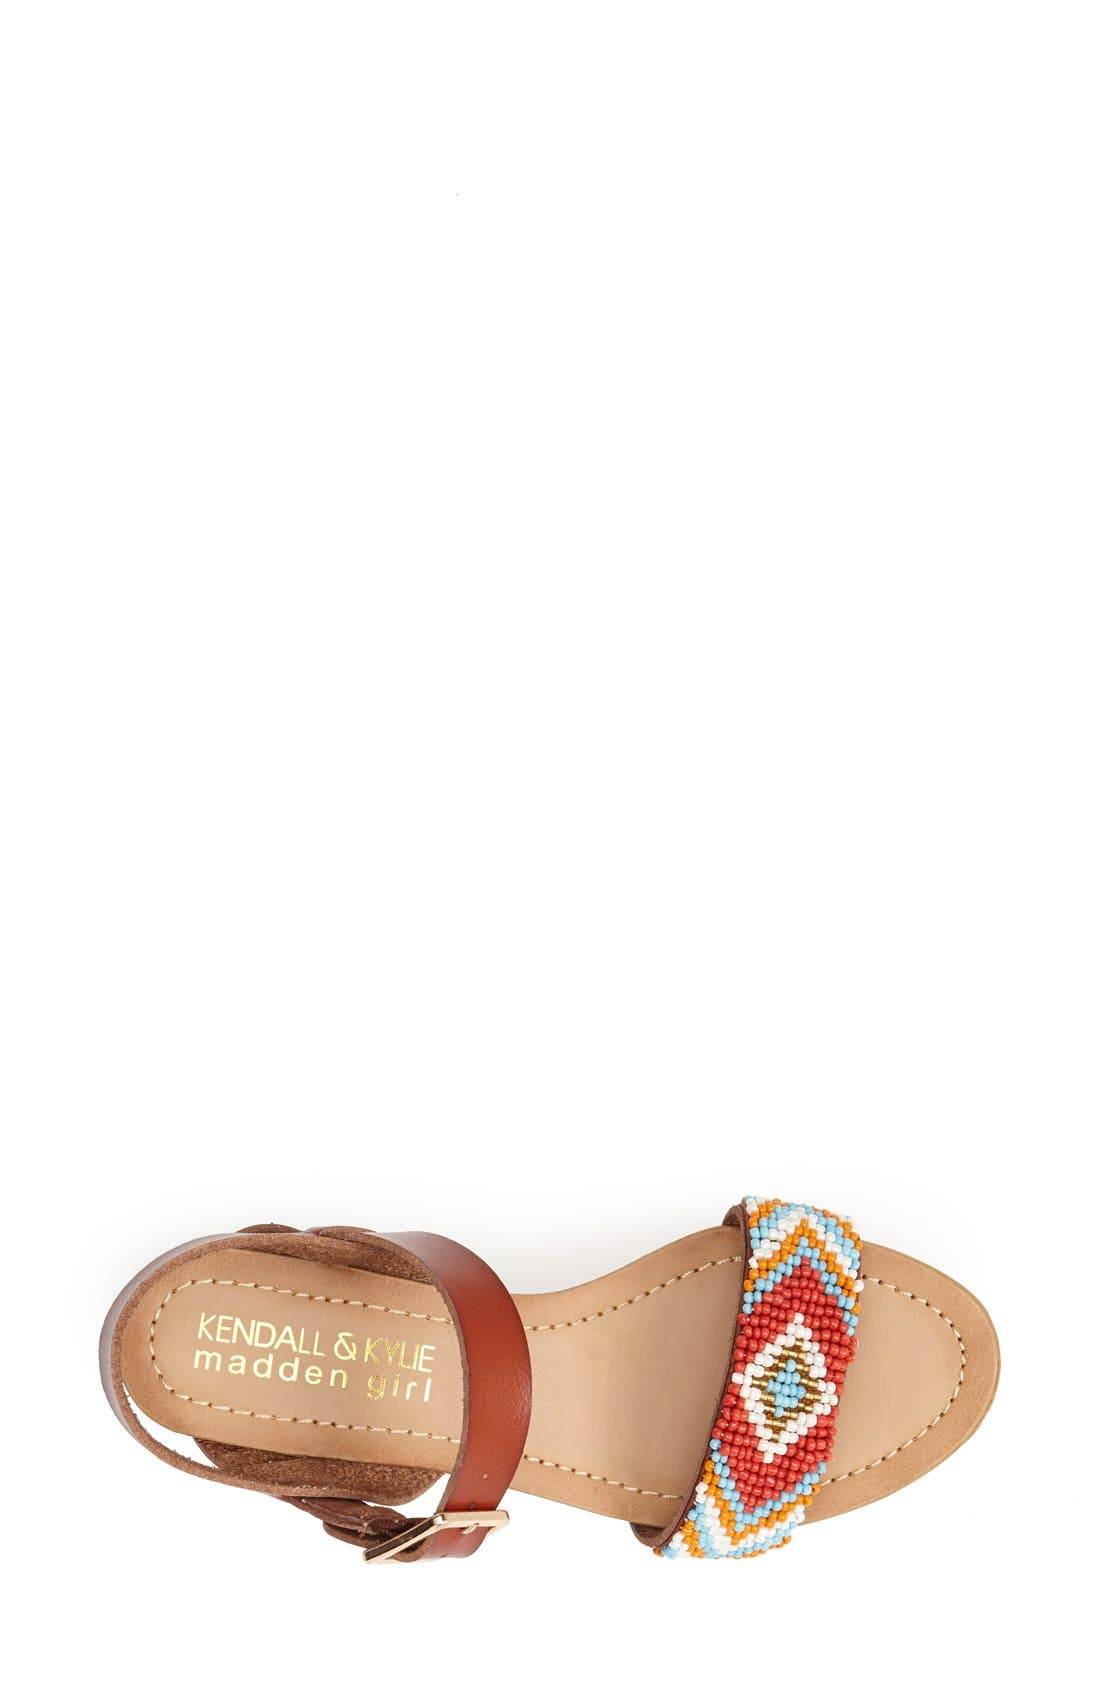 Alternate Image 3  - KENDALL + KYLIE Madden Girl 'Avaalon' Wedge Sandal (Women)